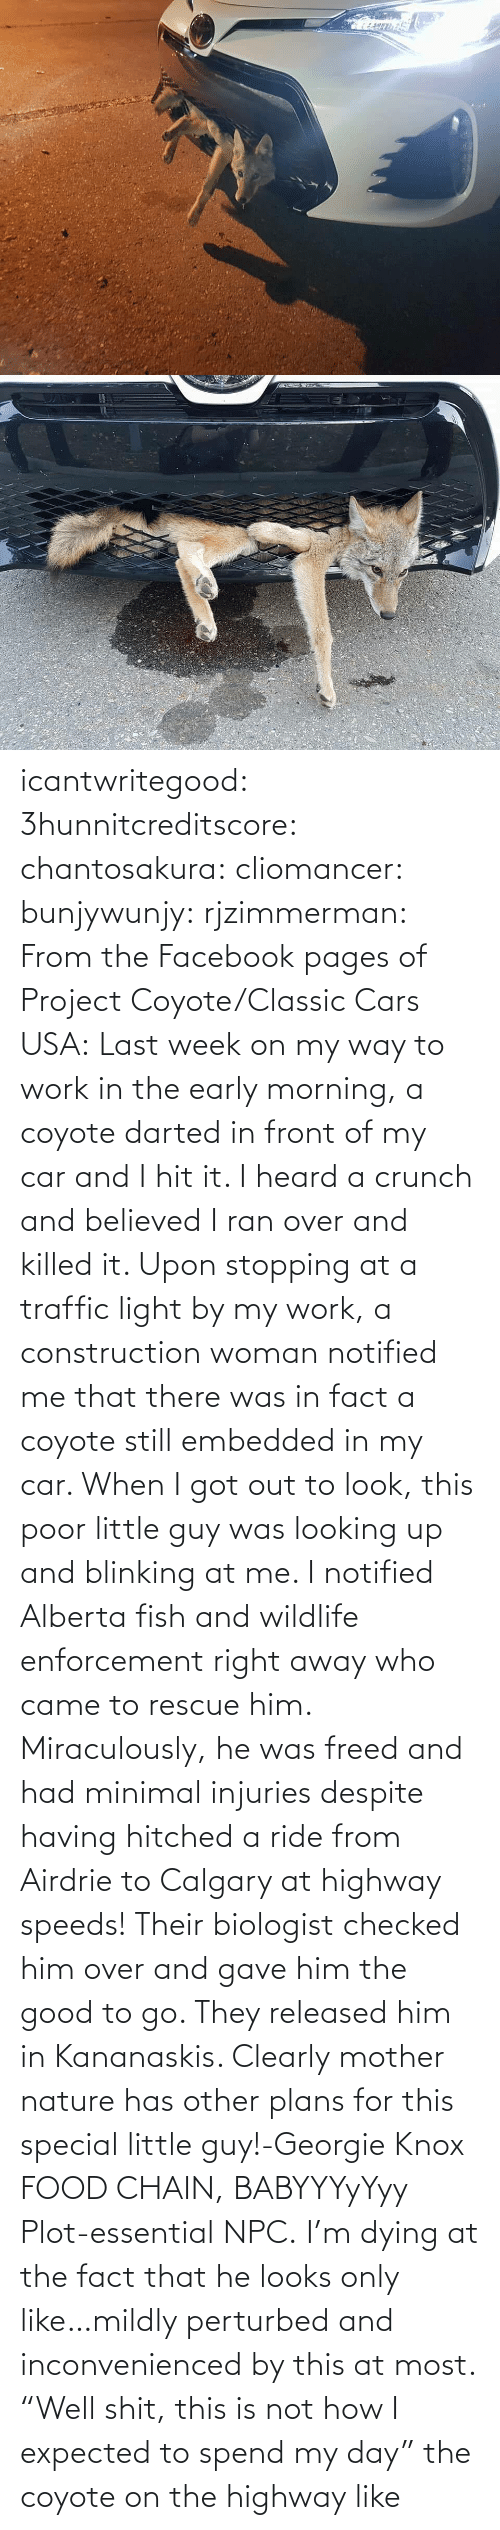 "That He: icantwritegood: 3hunnitcreditscore:  chantosakura:  cliomancer:  bunjywunjy:  rjzimmerman:  From the Facebook pages of Project Coyote/Classic Cars USA: Last week on my way to work in the early morning, a coyote darted in front of my car and I hit it. I heard a crunch and believed I ran over and killed it. Upon stopping at a traffic light by my work, a construction woman notified me that there was in fact a coyote still embedded in my car. When I got out to look, this poor little guy was looking up and blinking at me. I notified Alberta fish and wildlife enforcement right away who came to rescue him. Miraculously, he was freed and had minimal injuries despite having hitched a ride from Airdrie to Calgary at highway speeds! Their biologist checked him over and gave him the good to go. They released him in Kananaskis. Clearly mother nature has other plans for this special little guy!-Georgie Knox  FOOD CHAIN, BABYYYyYyy  Plot-essential NPC.   I'm dying at the fact that he looks only like…mildly perturbed and inconvenienced by this at most.    ""Well shit, this is not how I expected to spend my day""  the coyote on the highway like"